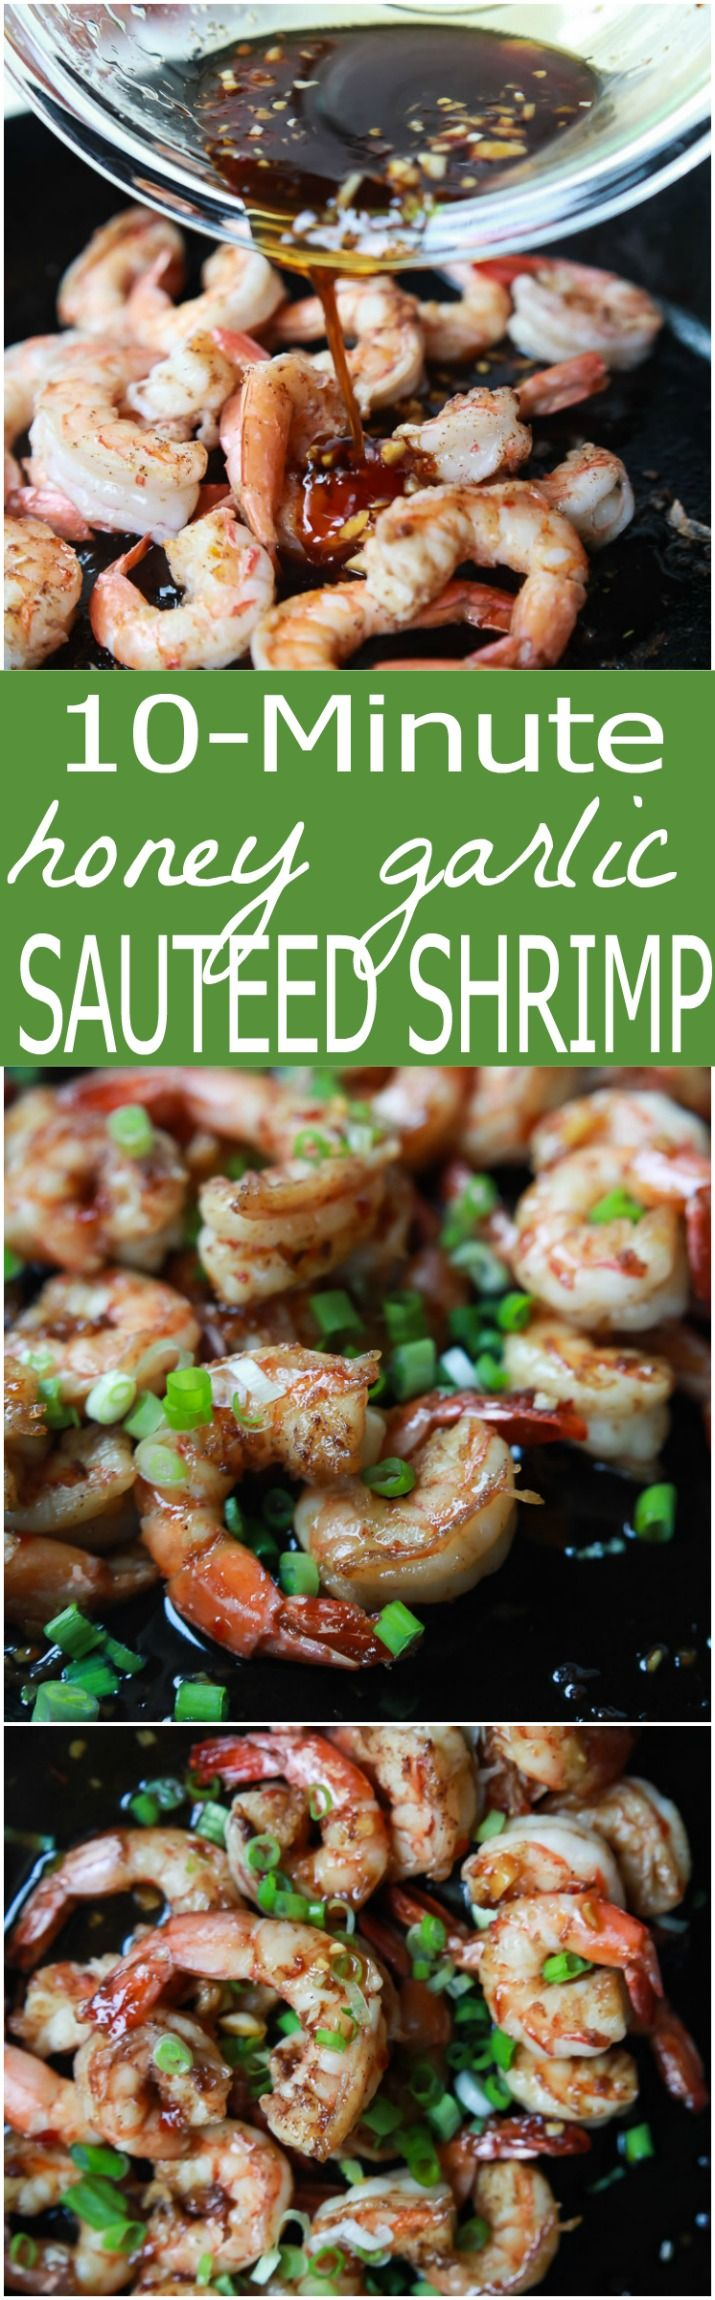 This sweet and spicy Honey Garlic Sauteed Shrimp is easy, light, absolutely delicious and only takes 10 minutes to make - definitely a winner! | joyfulhealthyeats